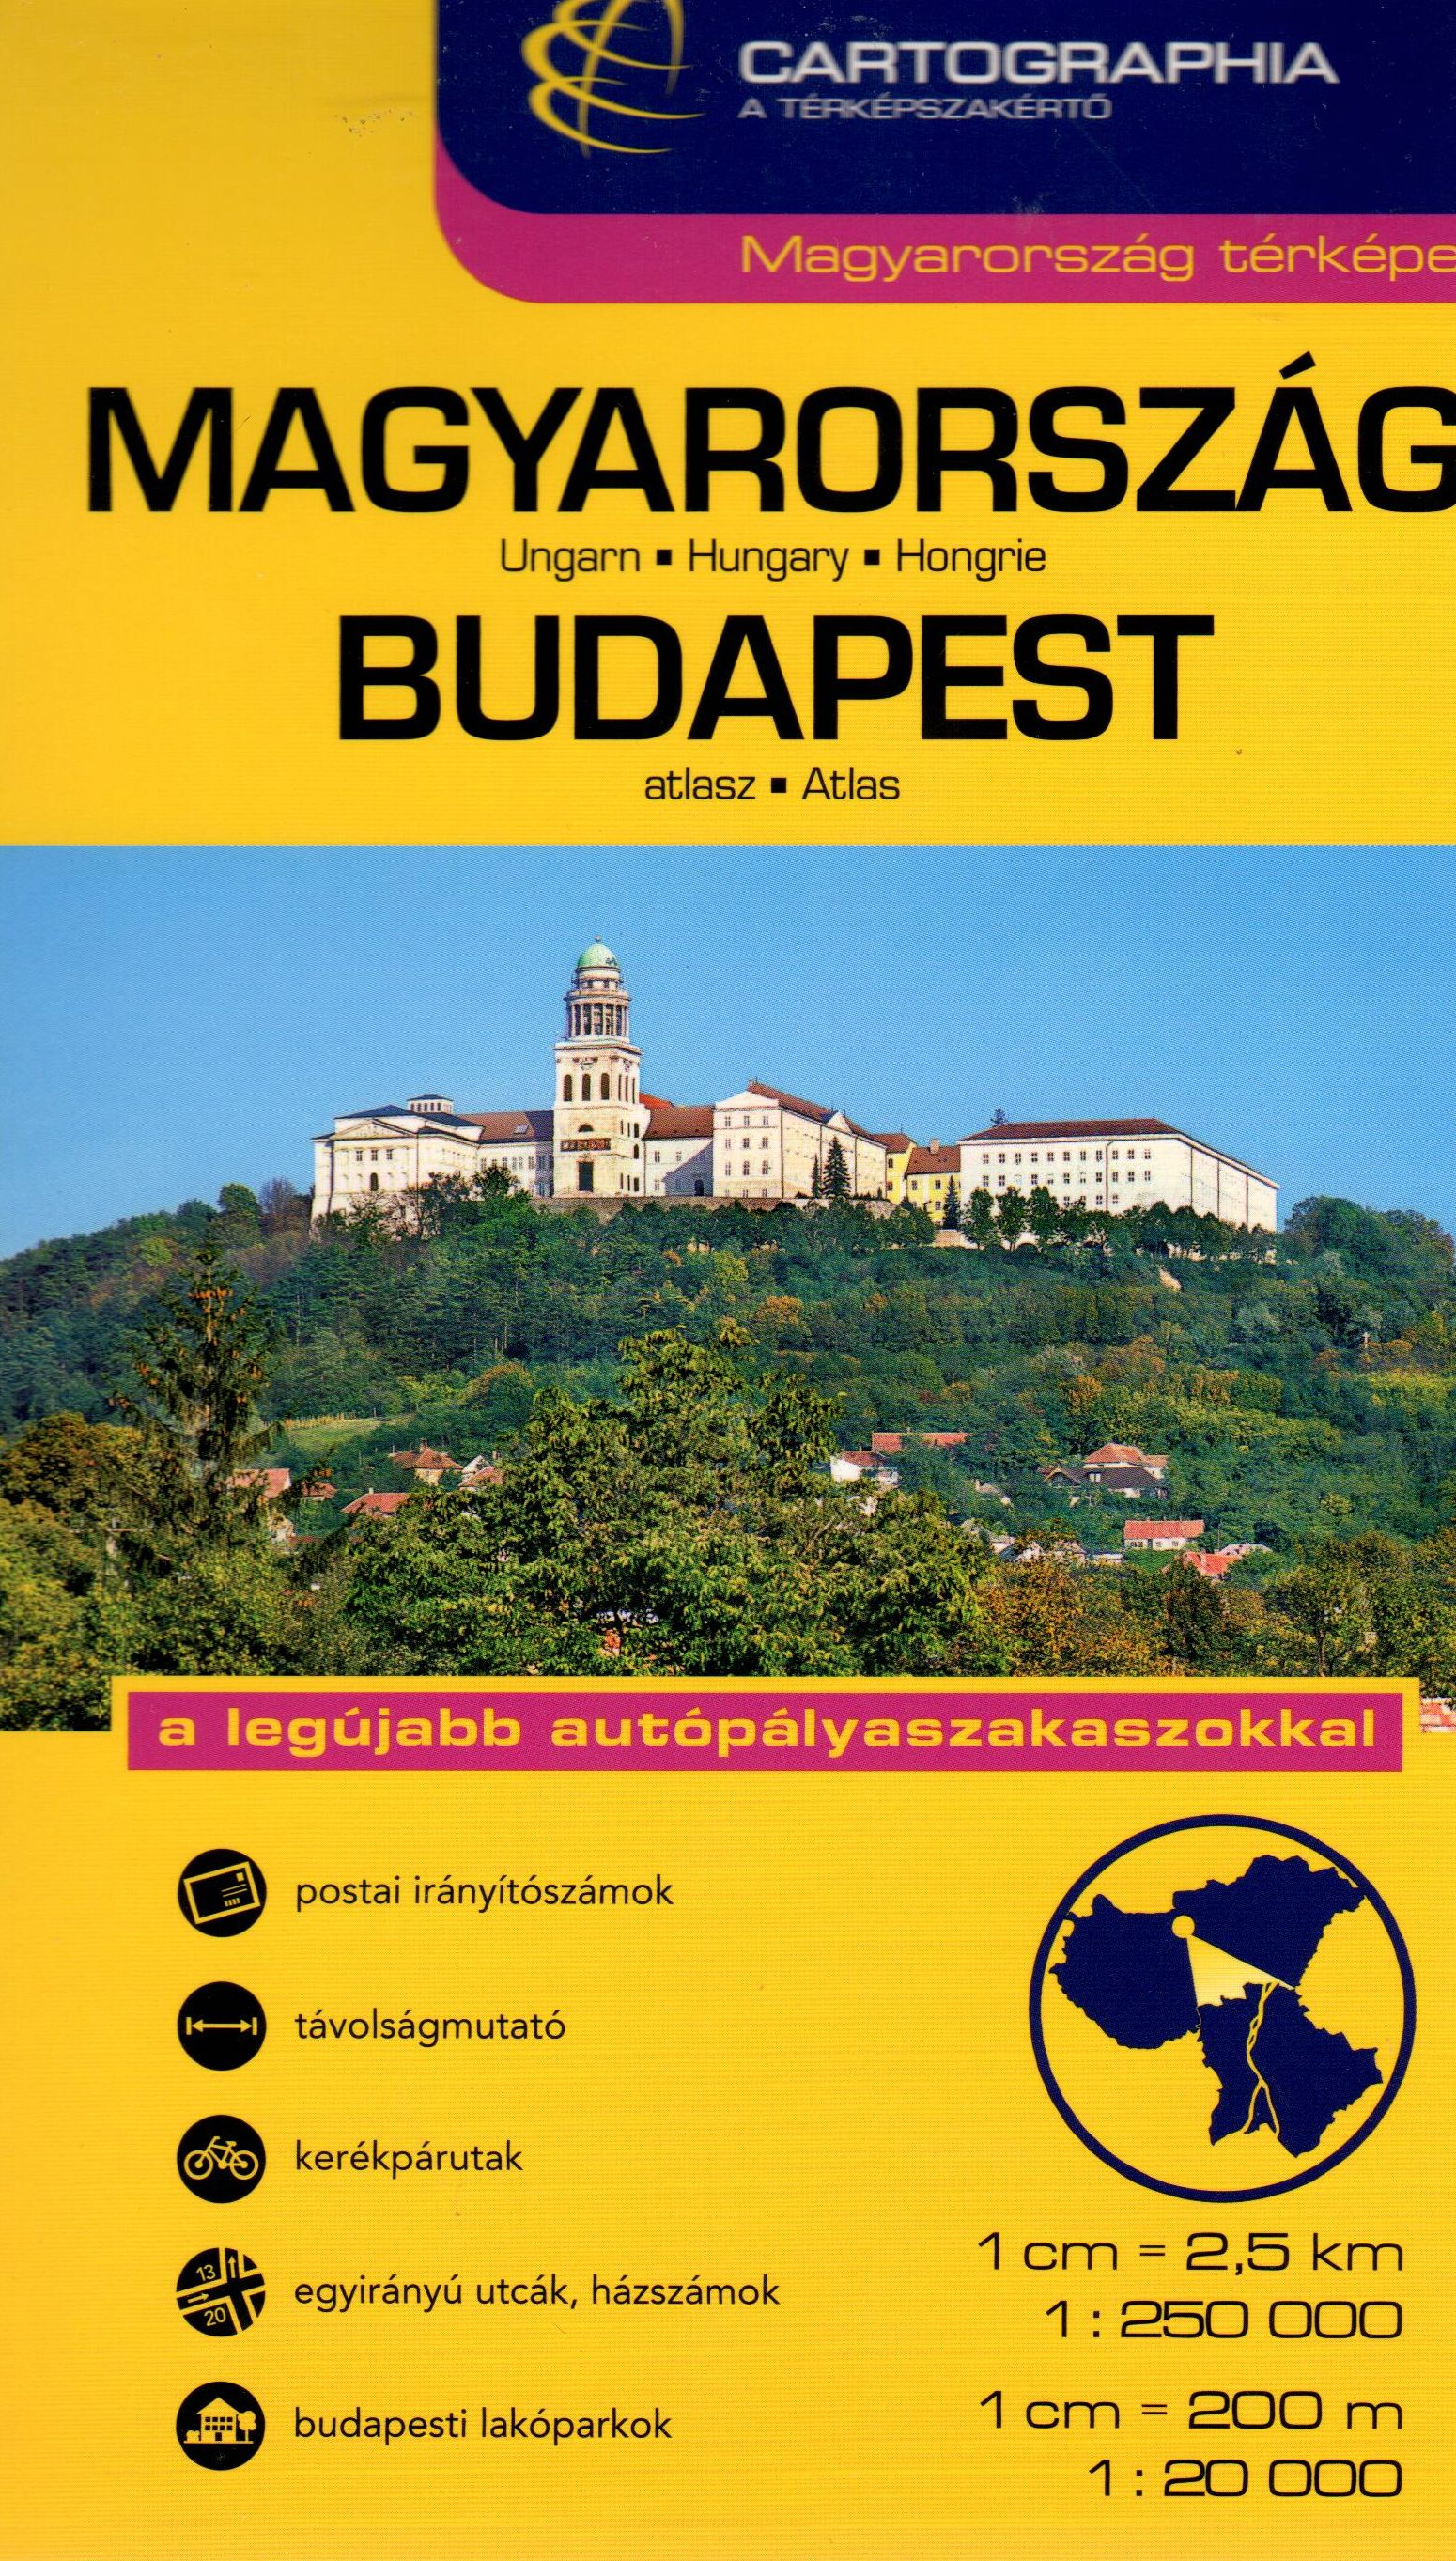 Fully indexed combined atlas Budapest + Hungary  in one spiral bound band 15 x 24 cm